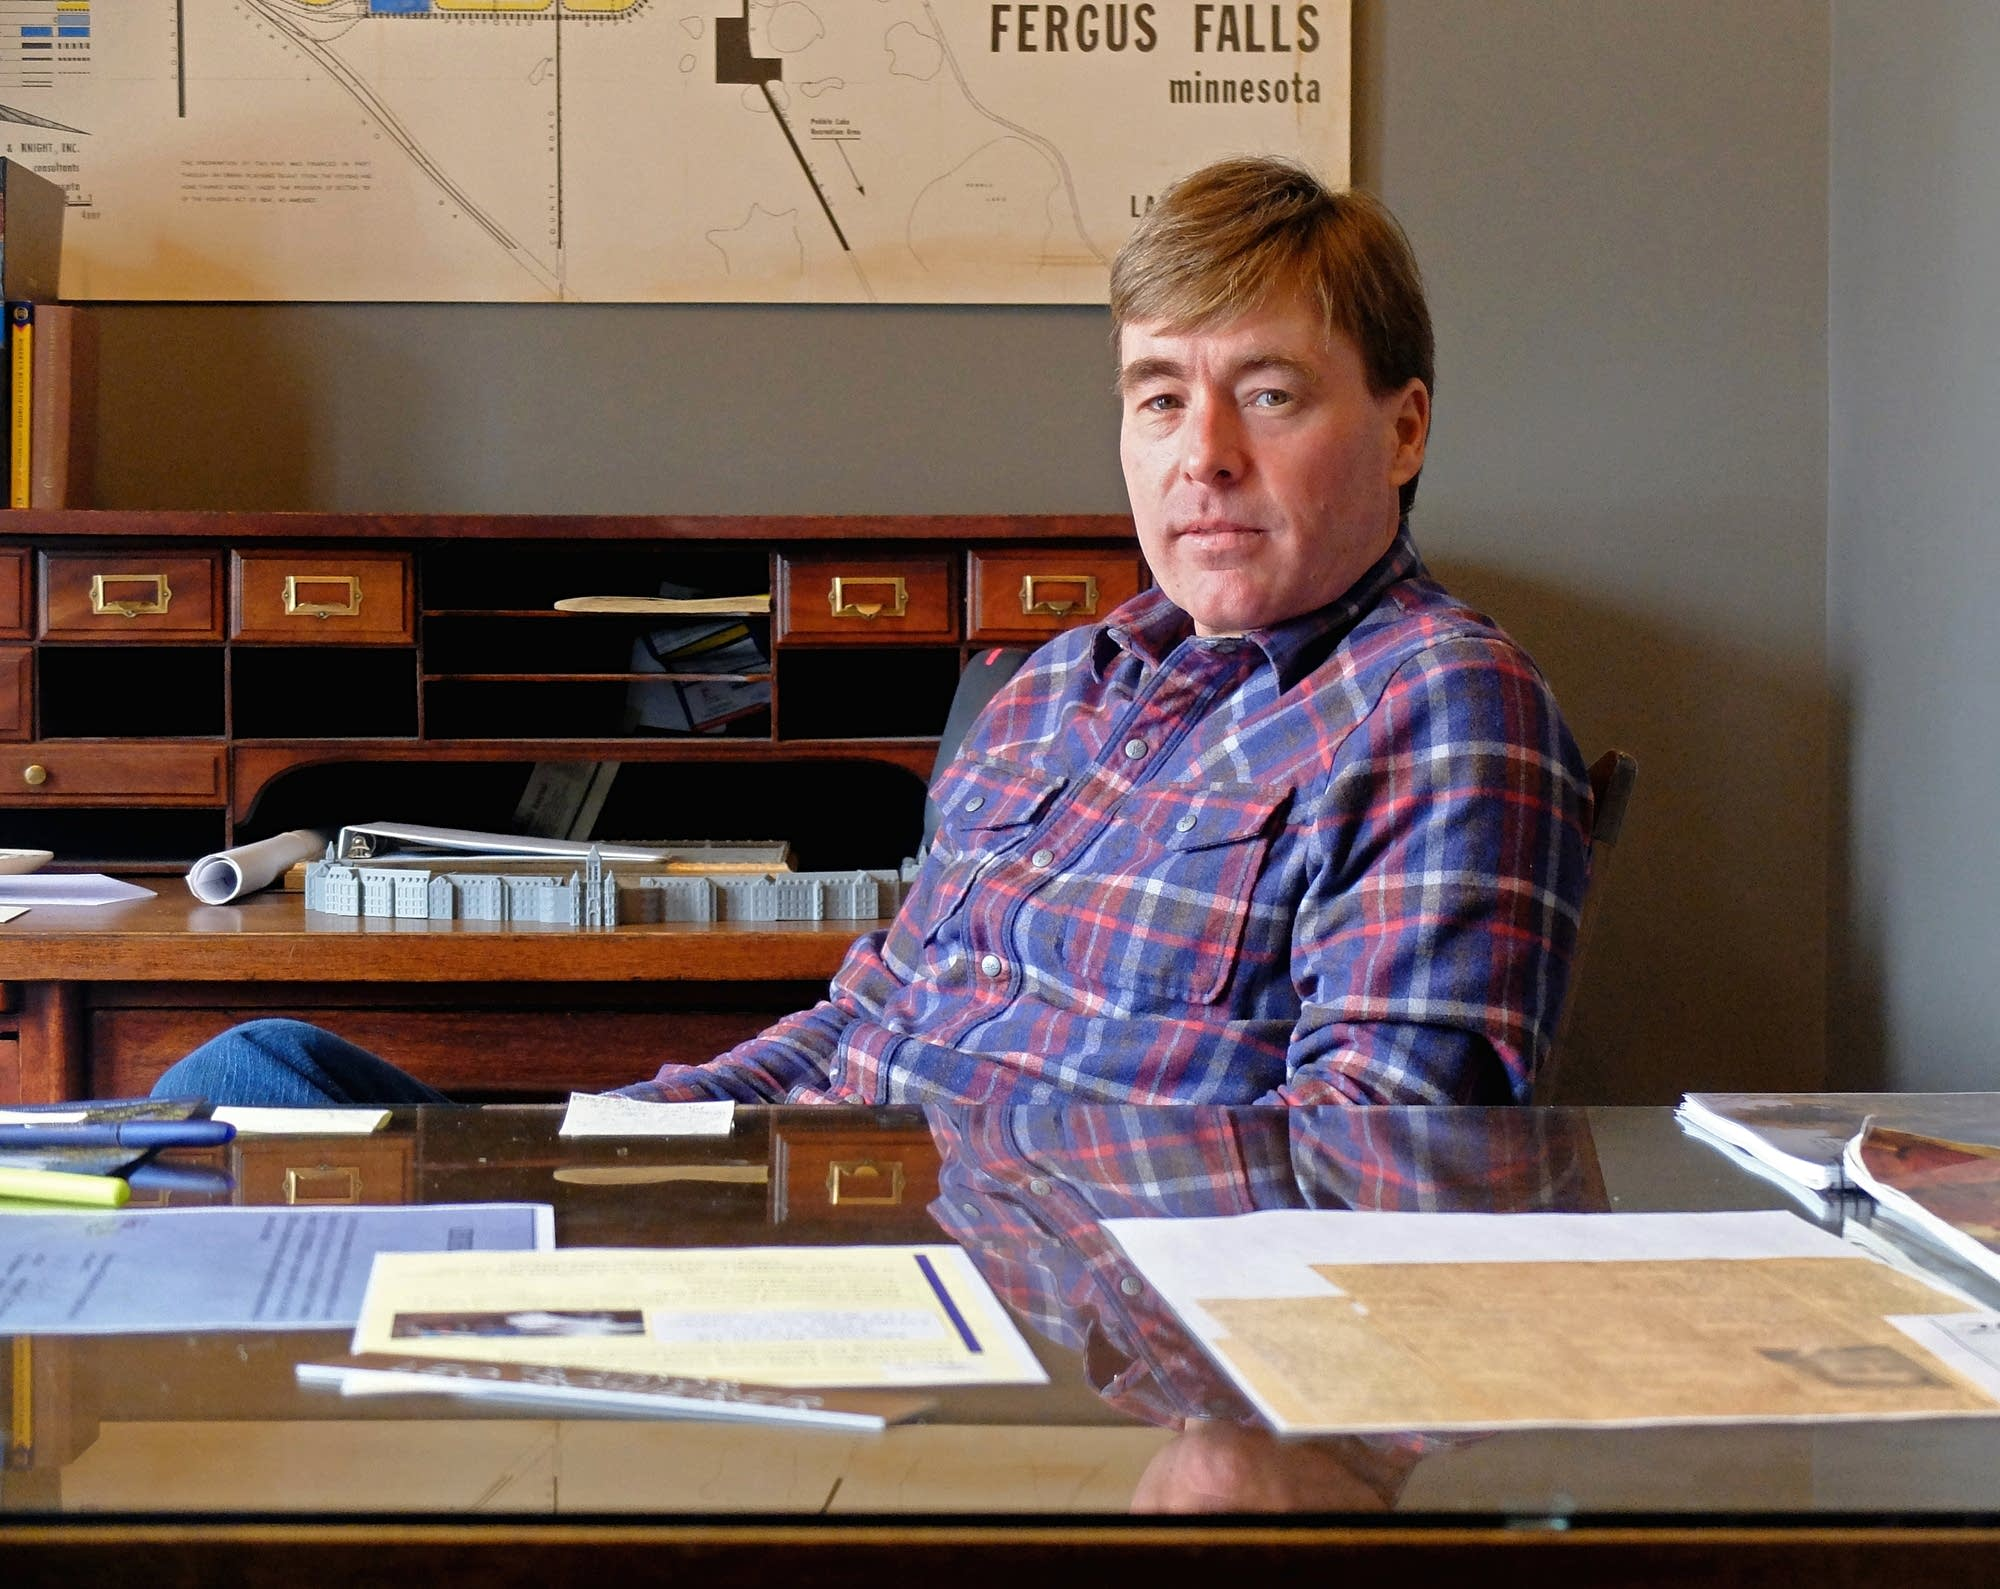 Fergus Falls Mayor Ben Schierer sits for a portrait in his office.